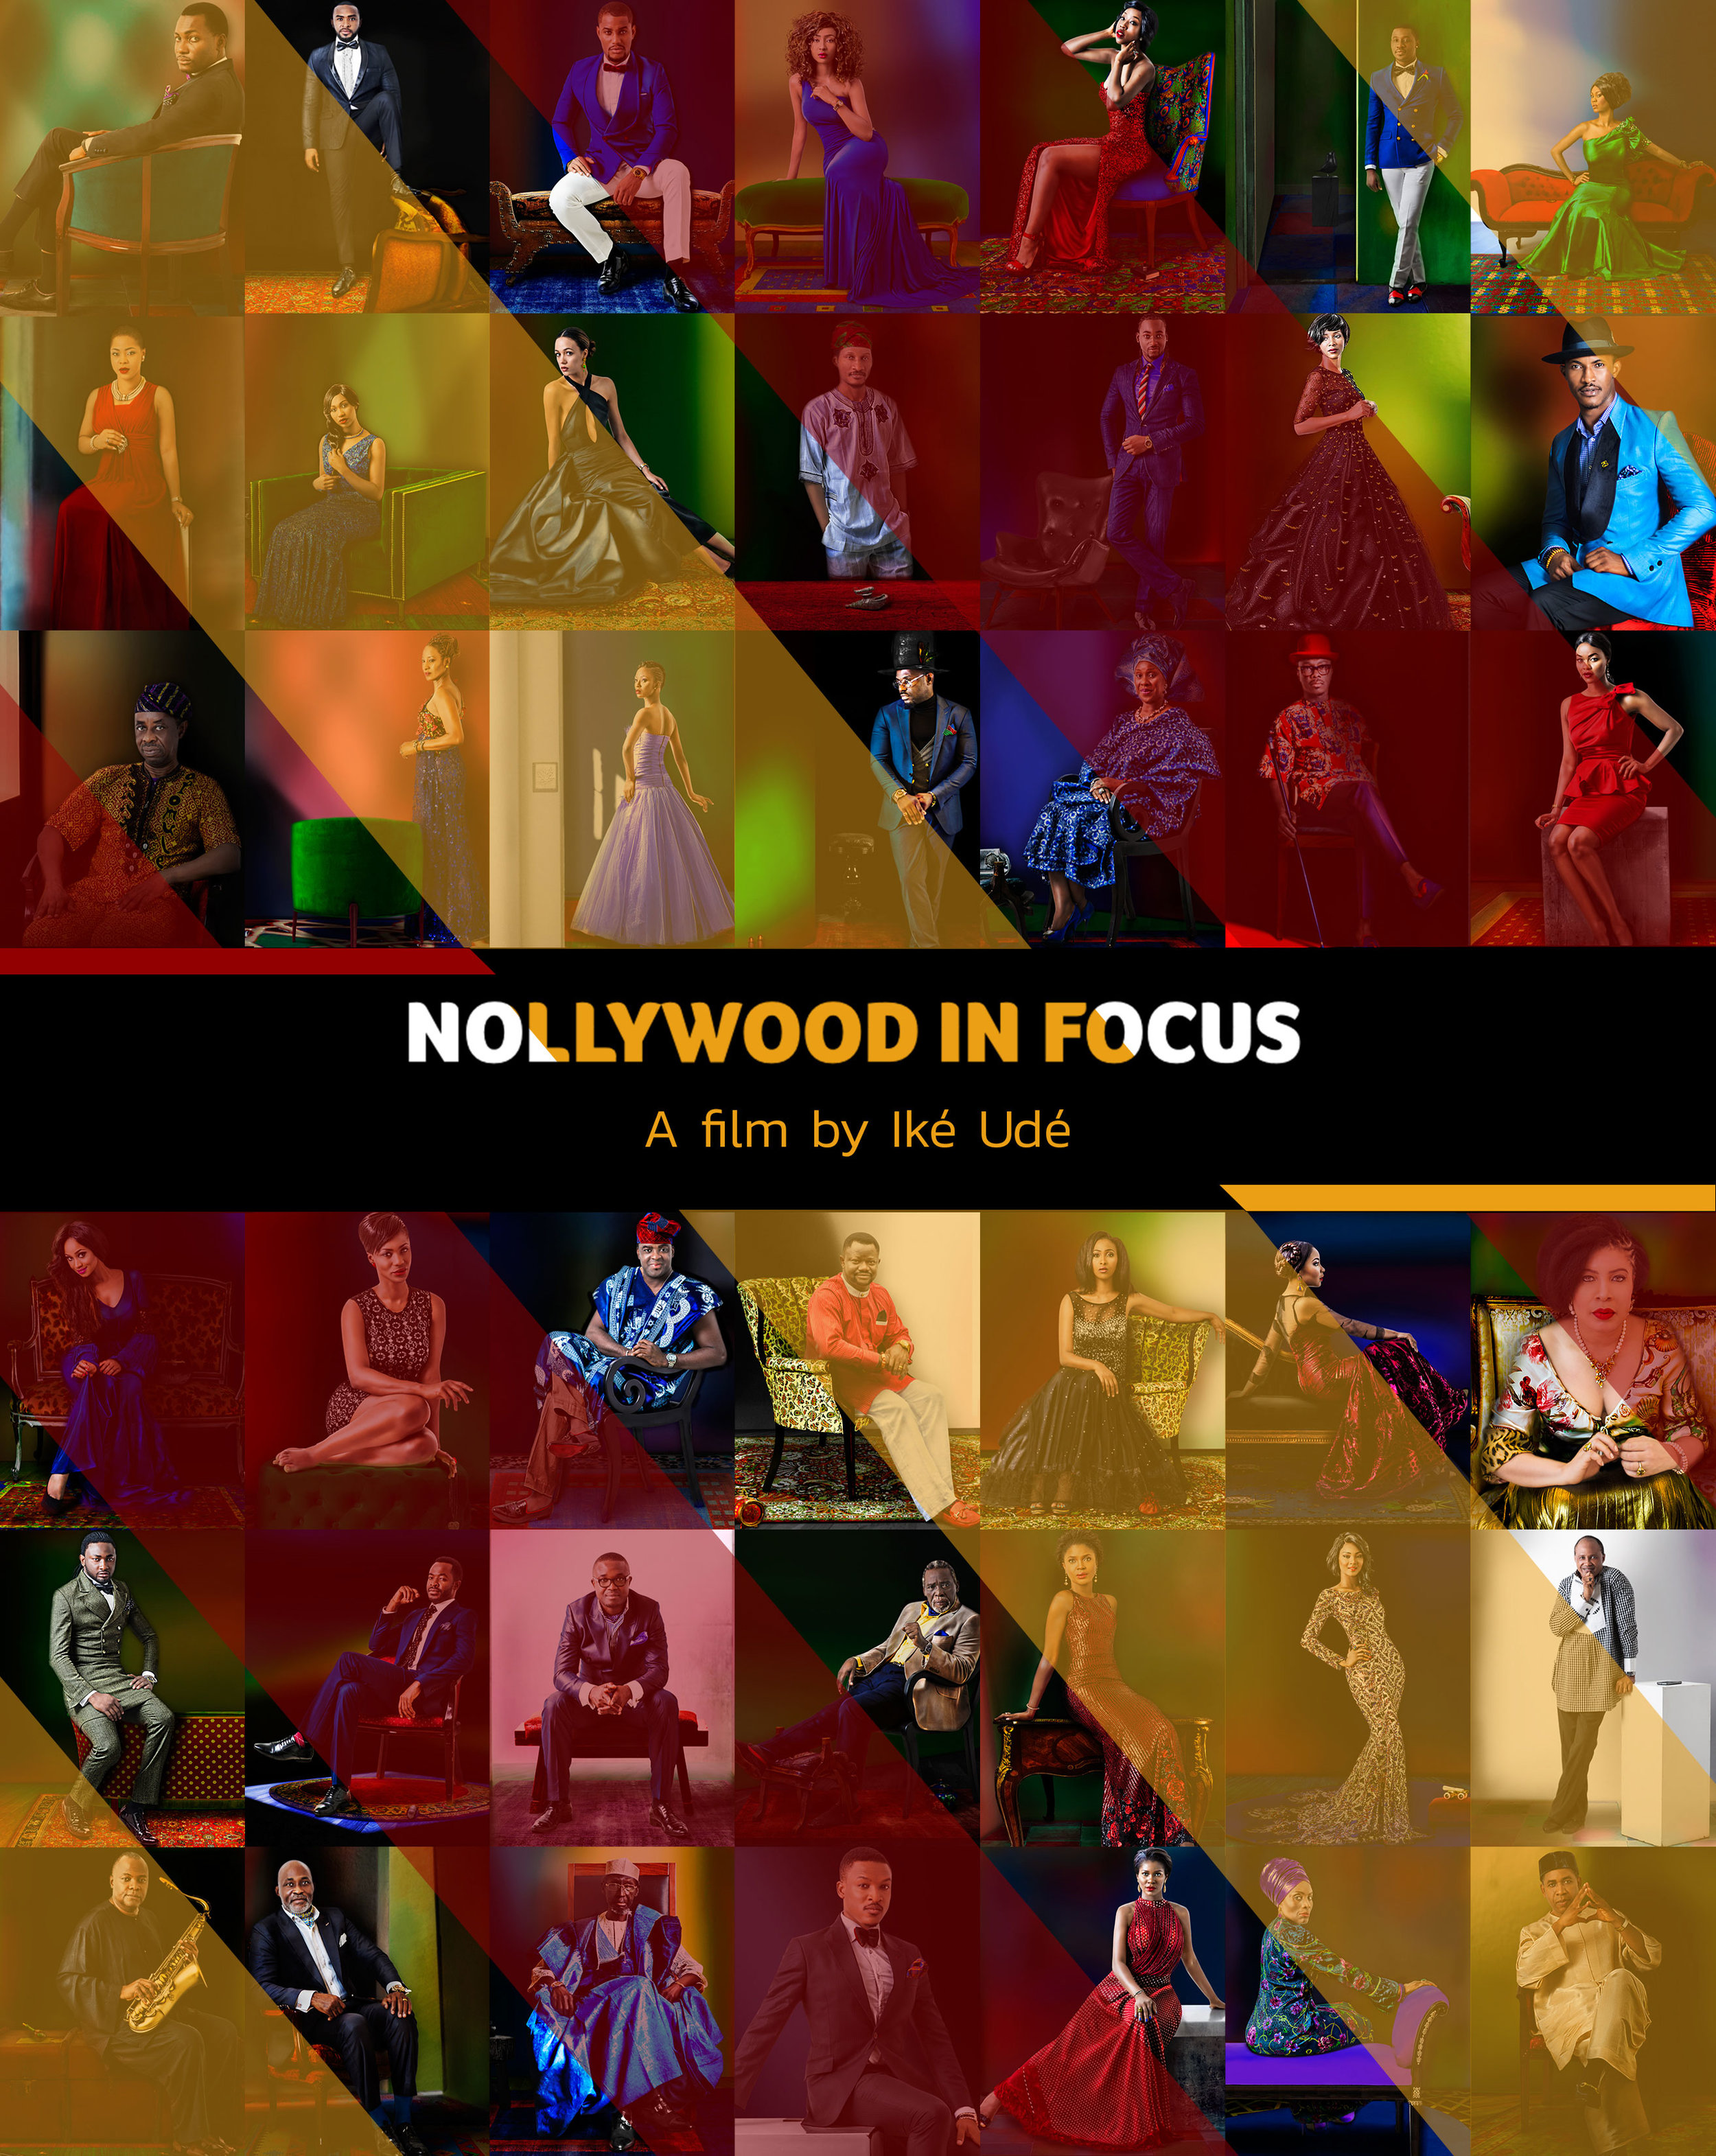 Nollywood-in-Focus-Poster.jpg